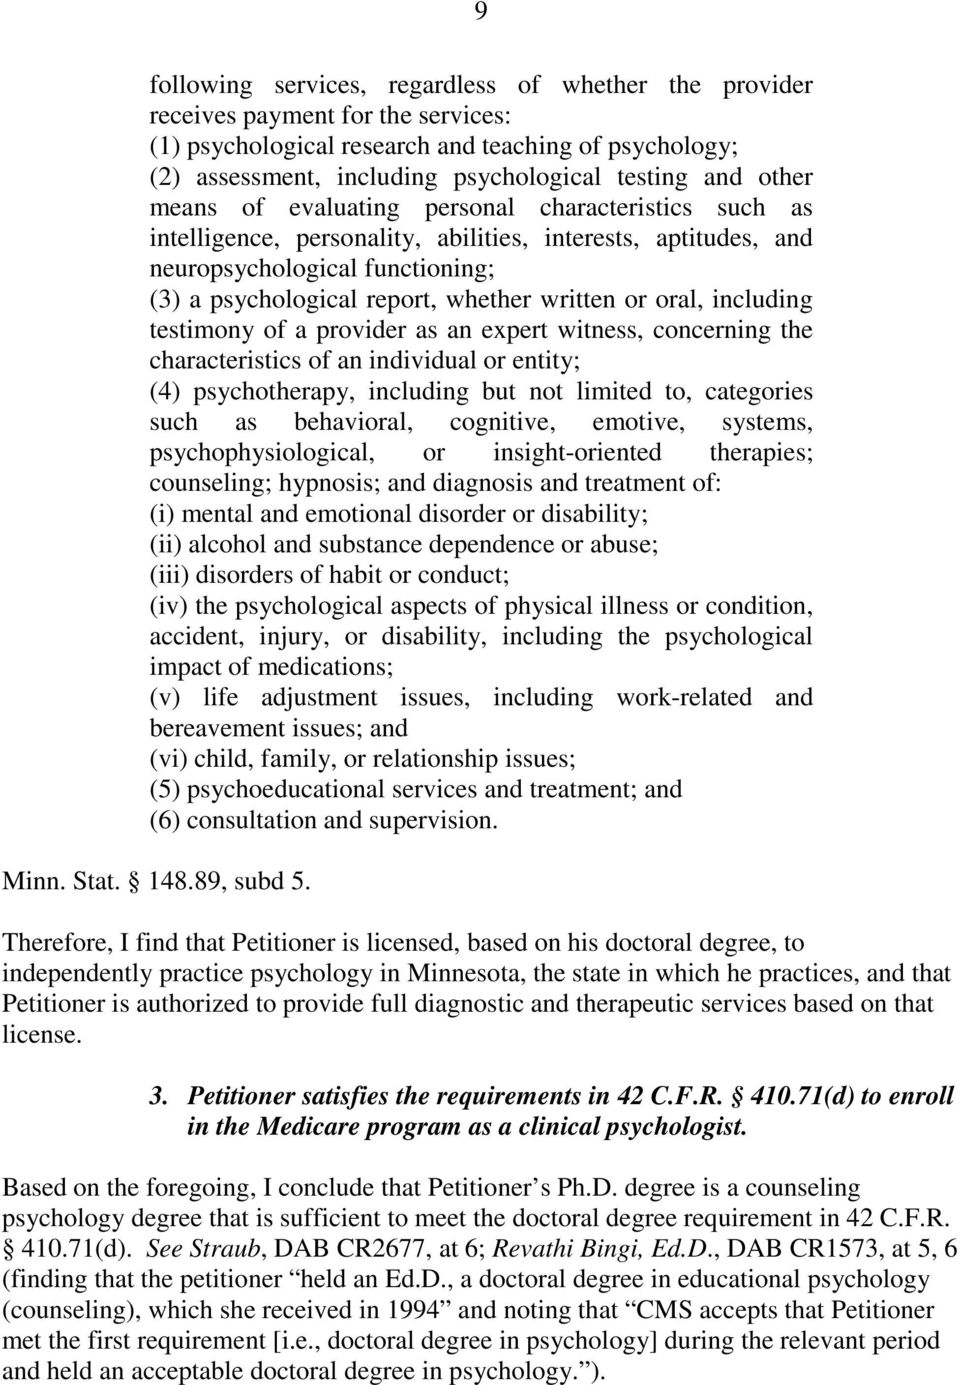 or oral, including testimony of a provider as an expert witness, concerning the characteristics of an individual or entity; (4) psychotherapy, including but not limited to, categories such as